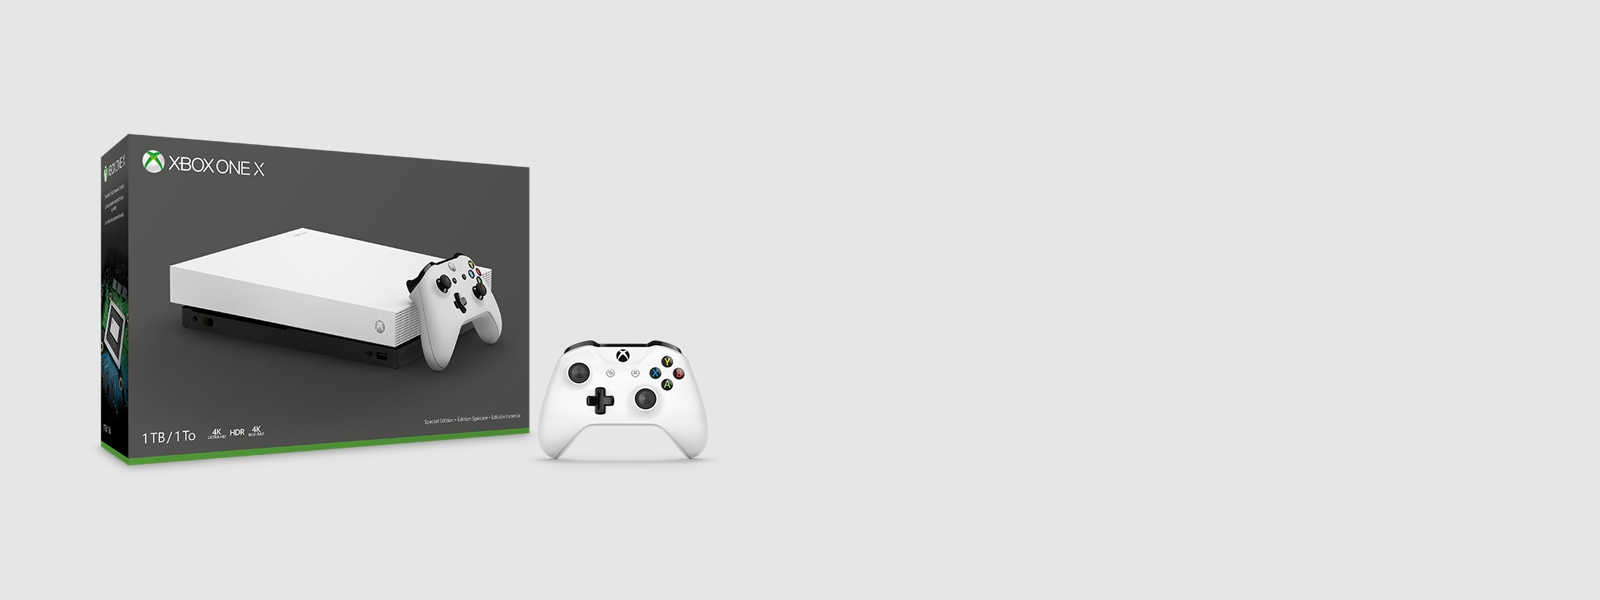 Xbox One X console and white Xbox One controller.